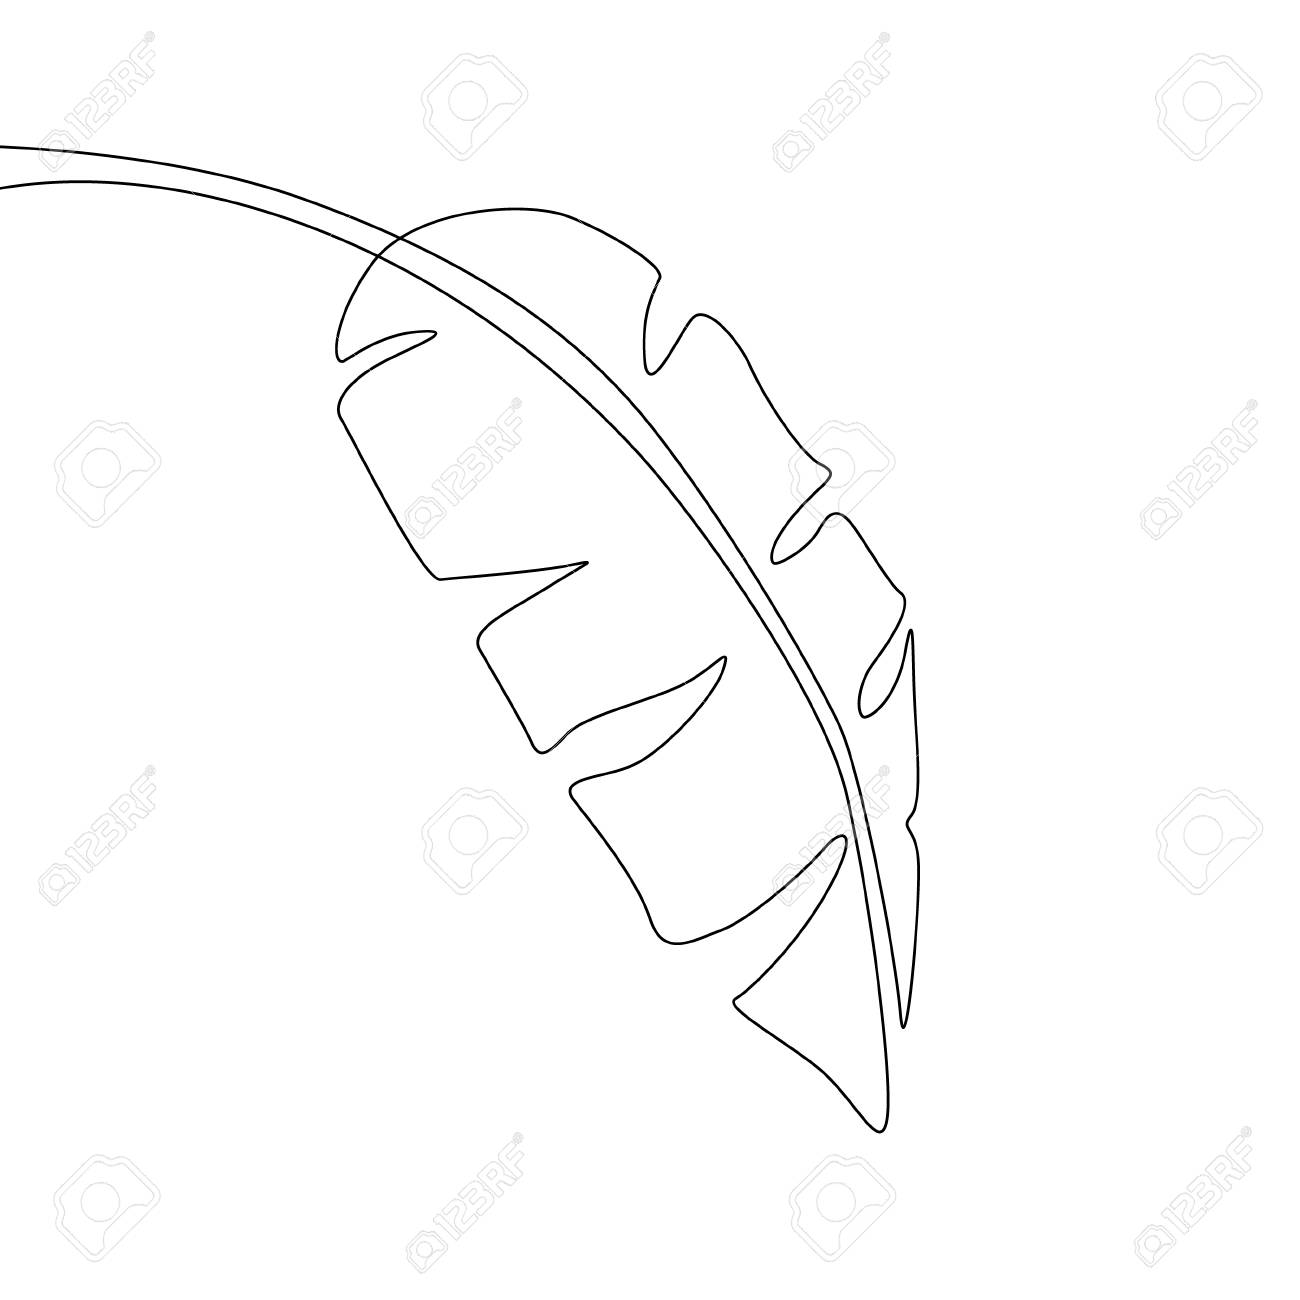 One Line Drawing Banana Leaf Continuous Line Exotic Tropical Royalty Free Cliparts Vectors And Stock Illustration Image 122484163